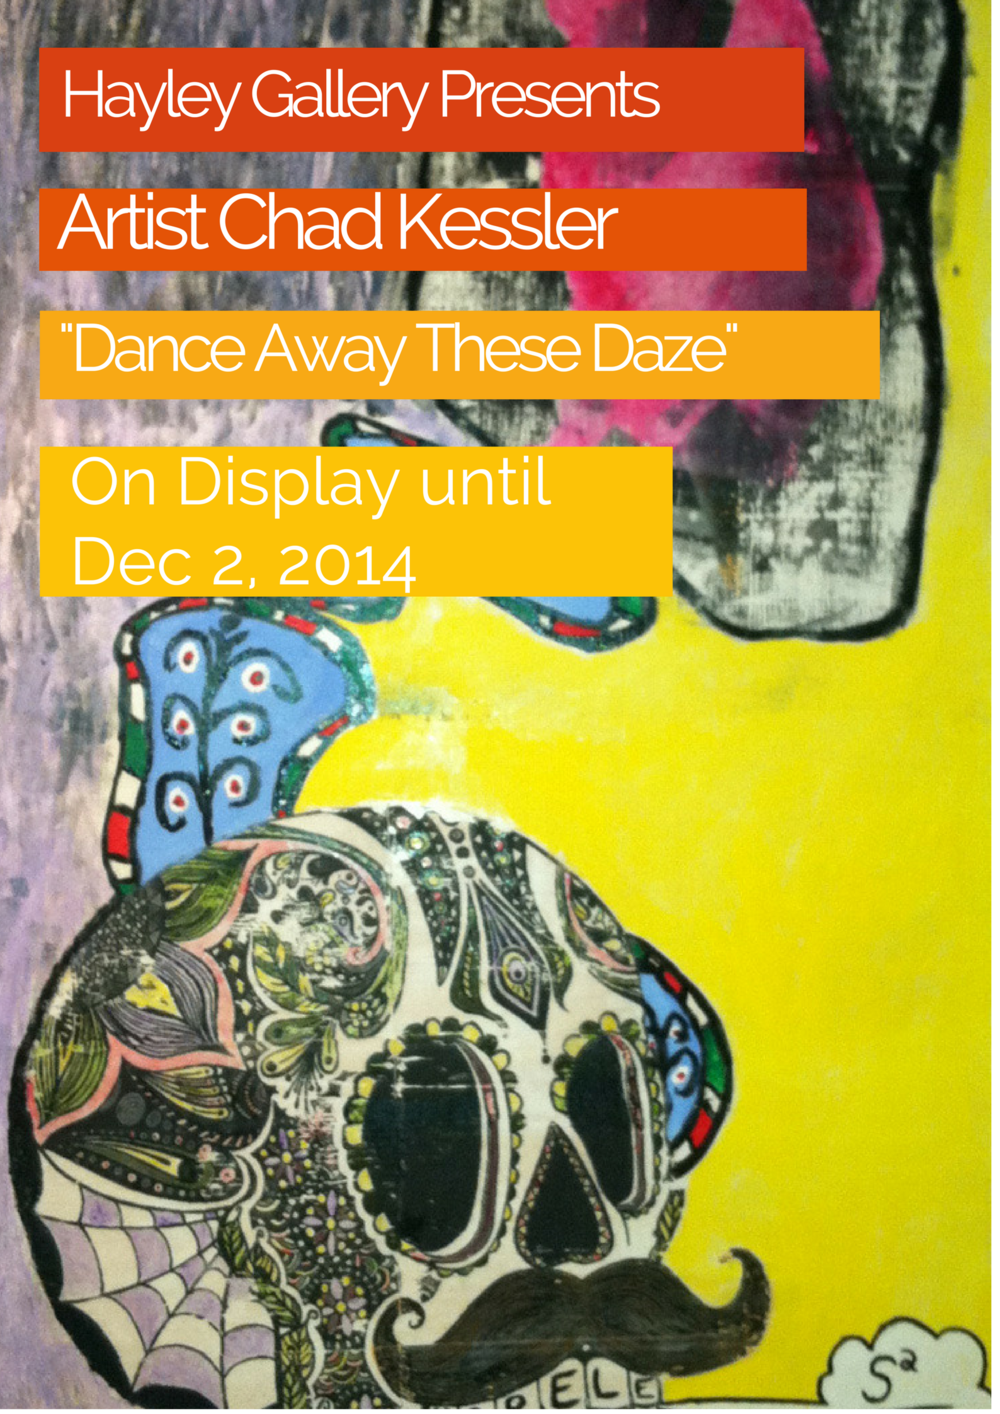 Chad Kessler on display Dec 2014.png